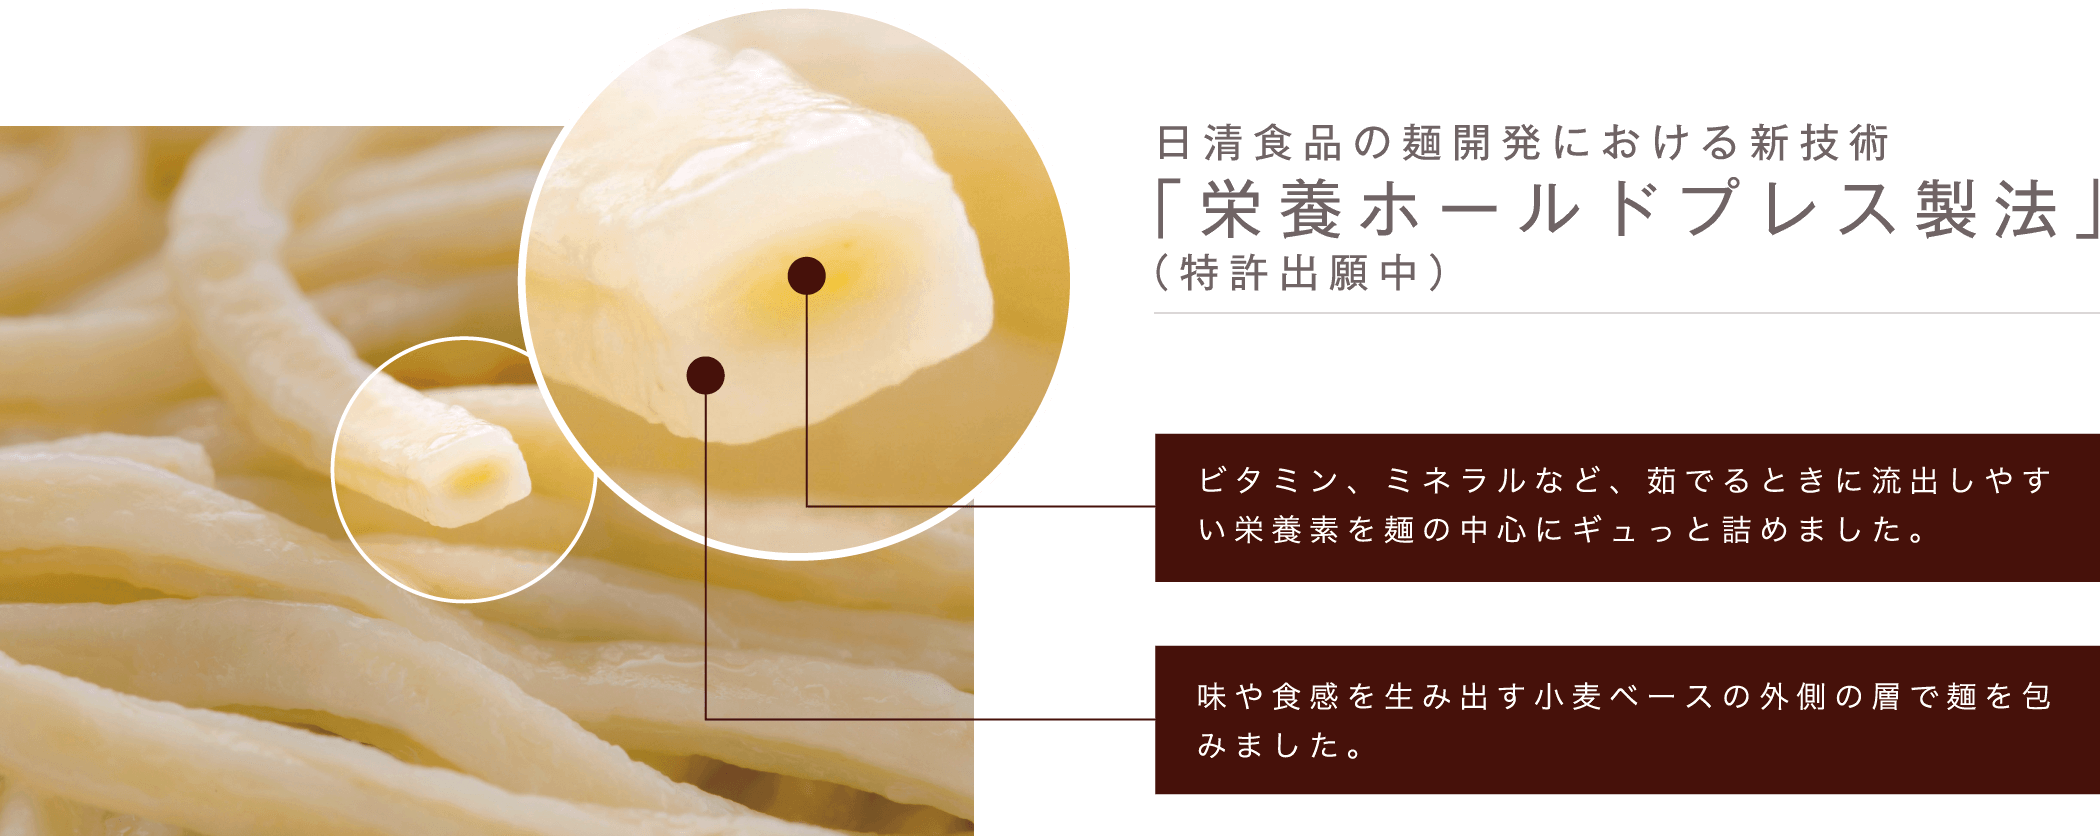 All-in NOODLES (オールインヌードル)